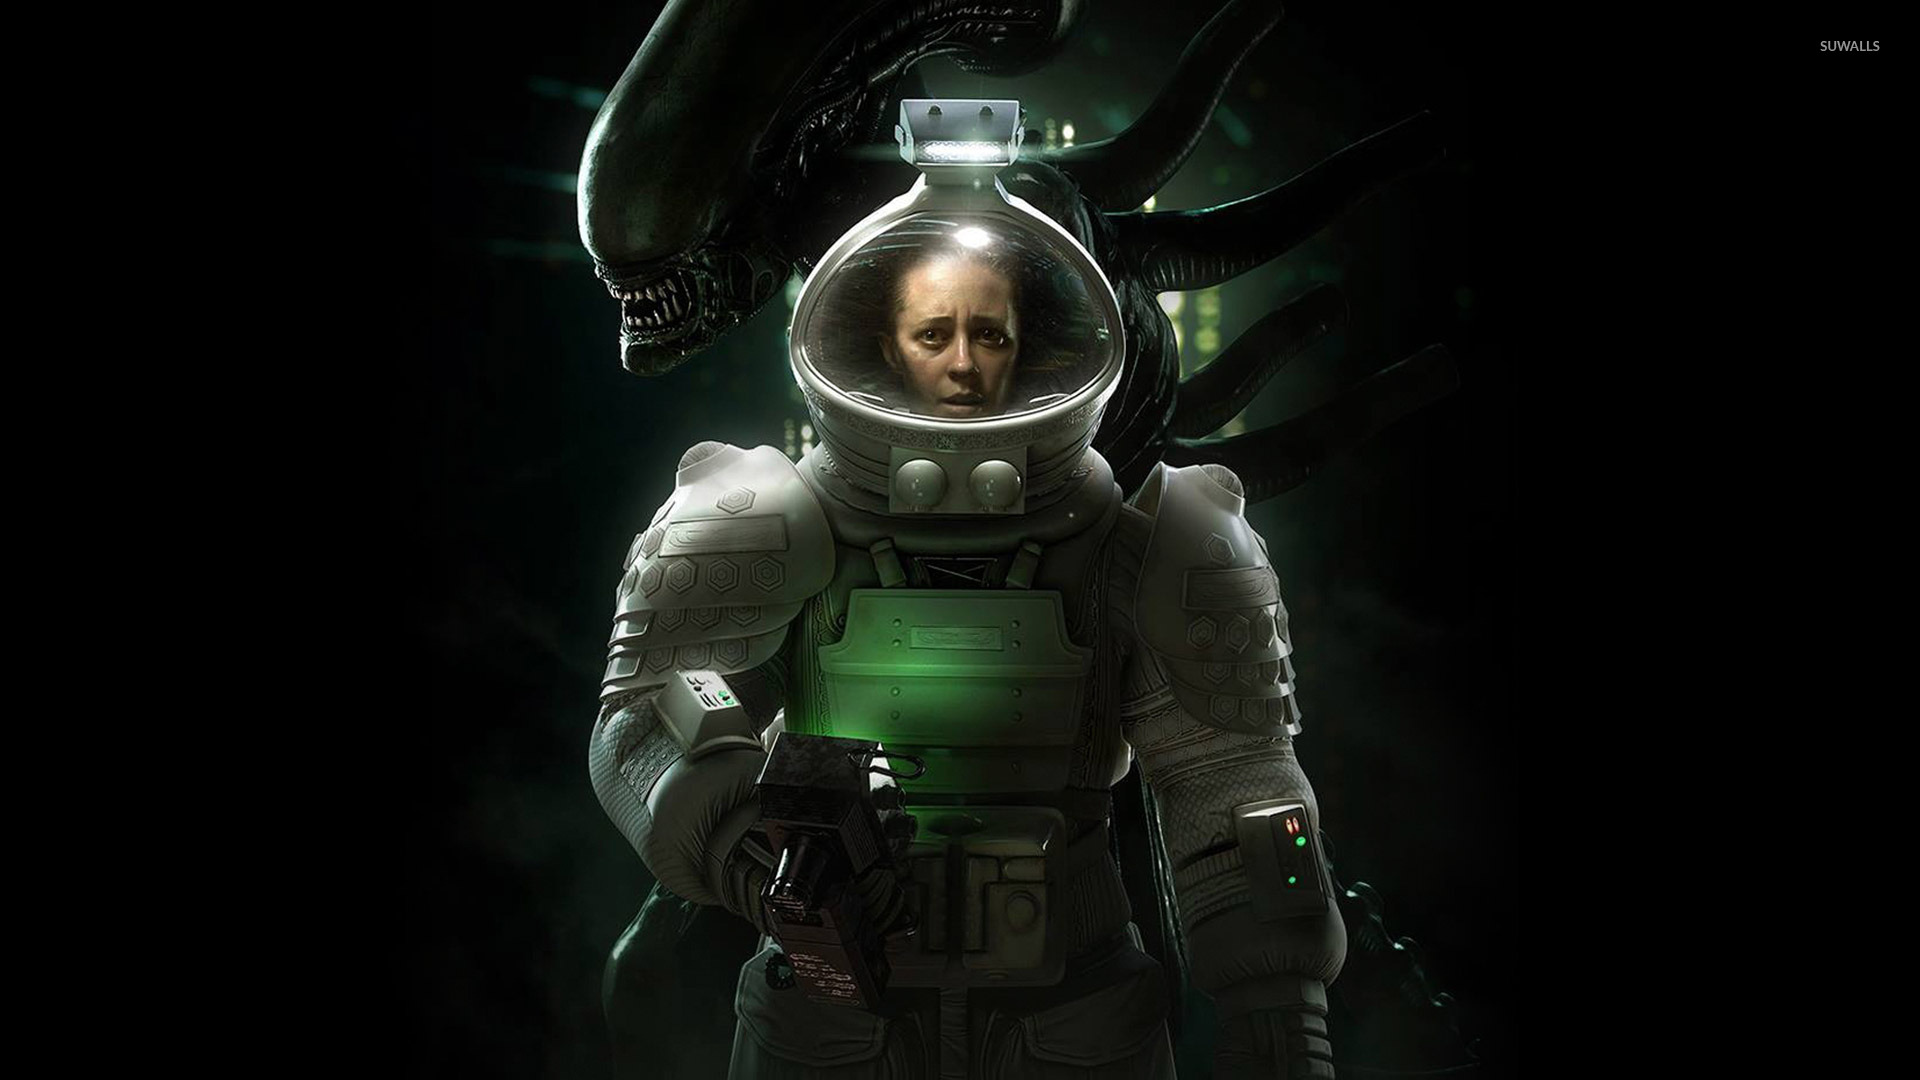 Alien Isolation 4 Wallpaper Game Wallpapers 29424